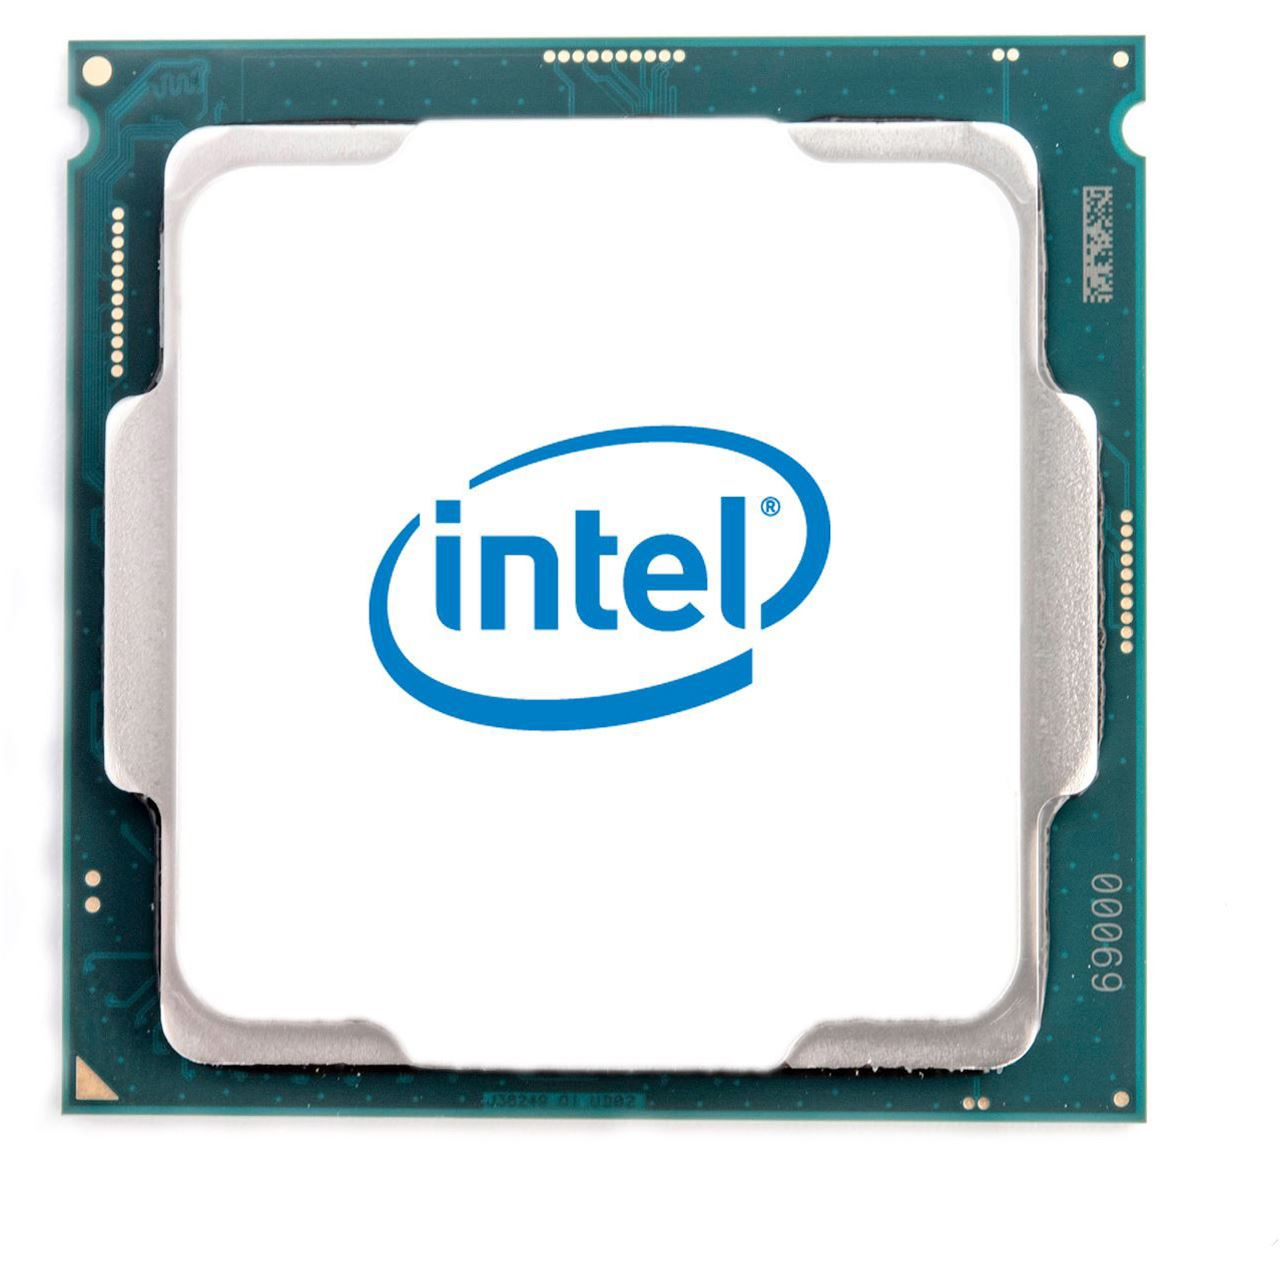 Intel-Core-i3-8300-Core-i3-3-7-GHz-Skt-1151-Coffee-Lake-CM8068403377111